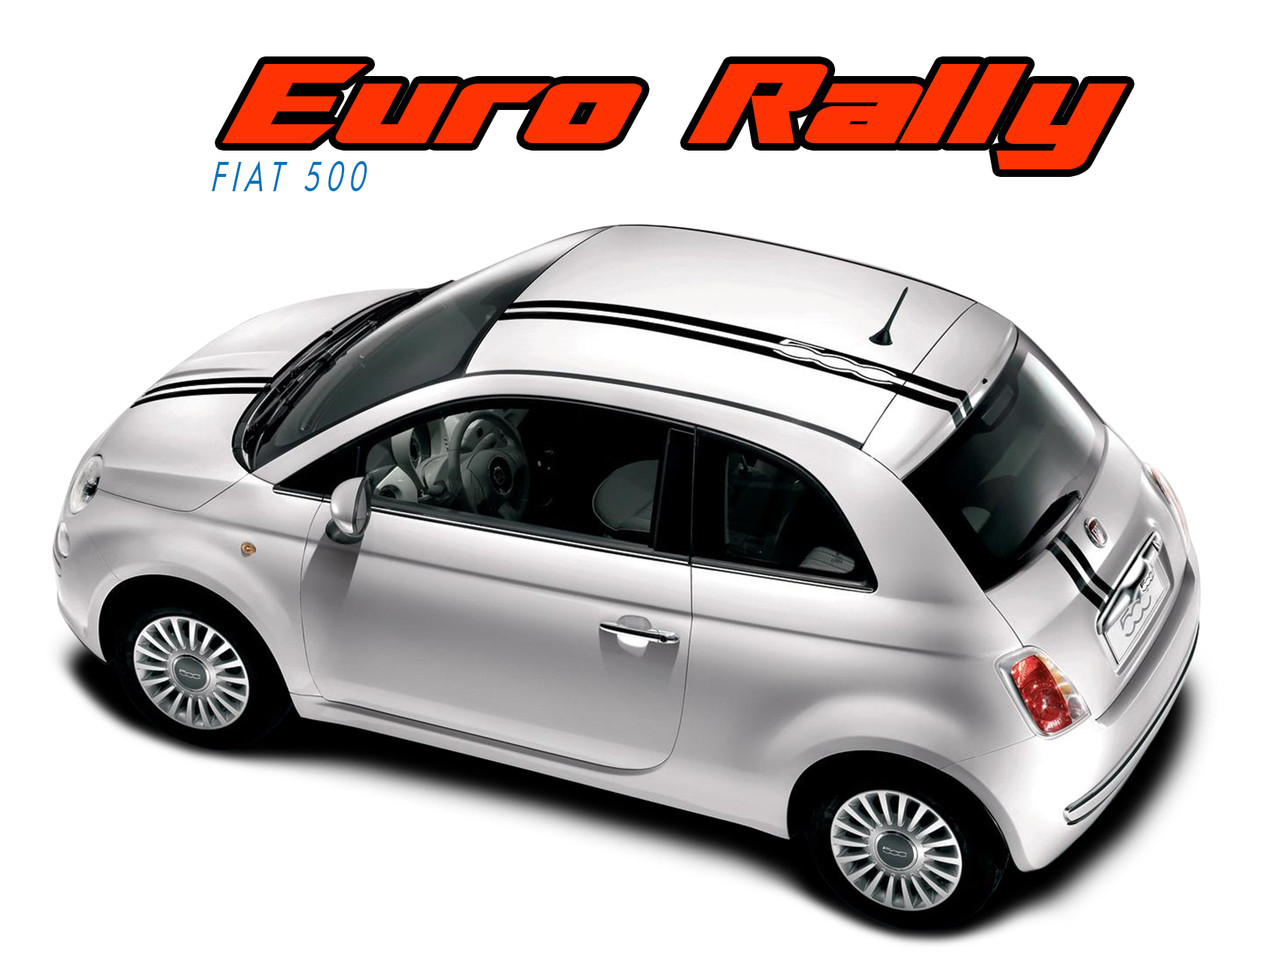 Euro Rally   2017  Offset Racing Stripe Abarth Vinyl Graphics Striping Decals Kit Vgp 1670